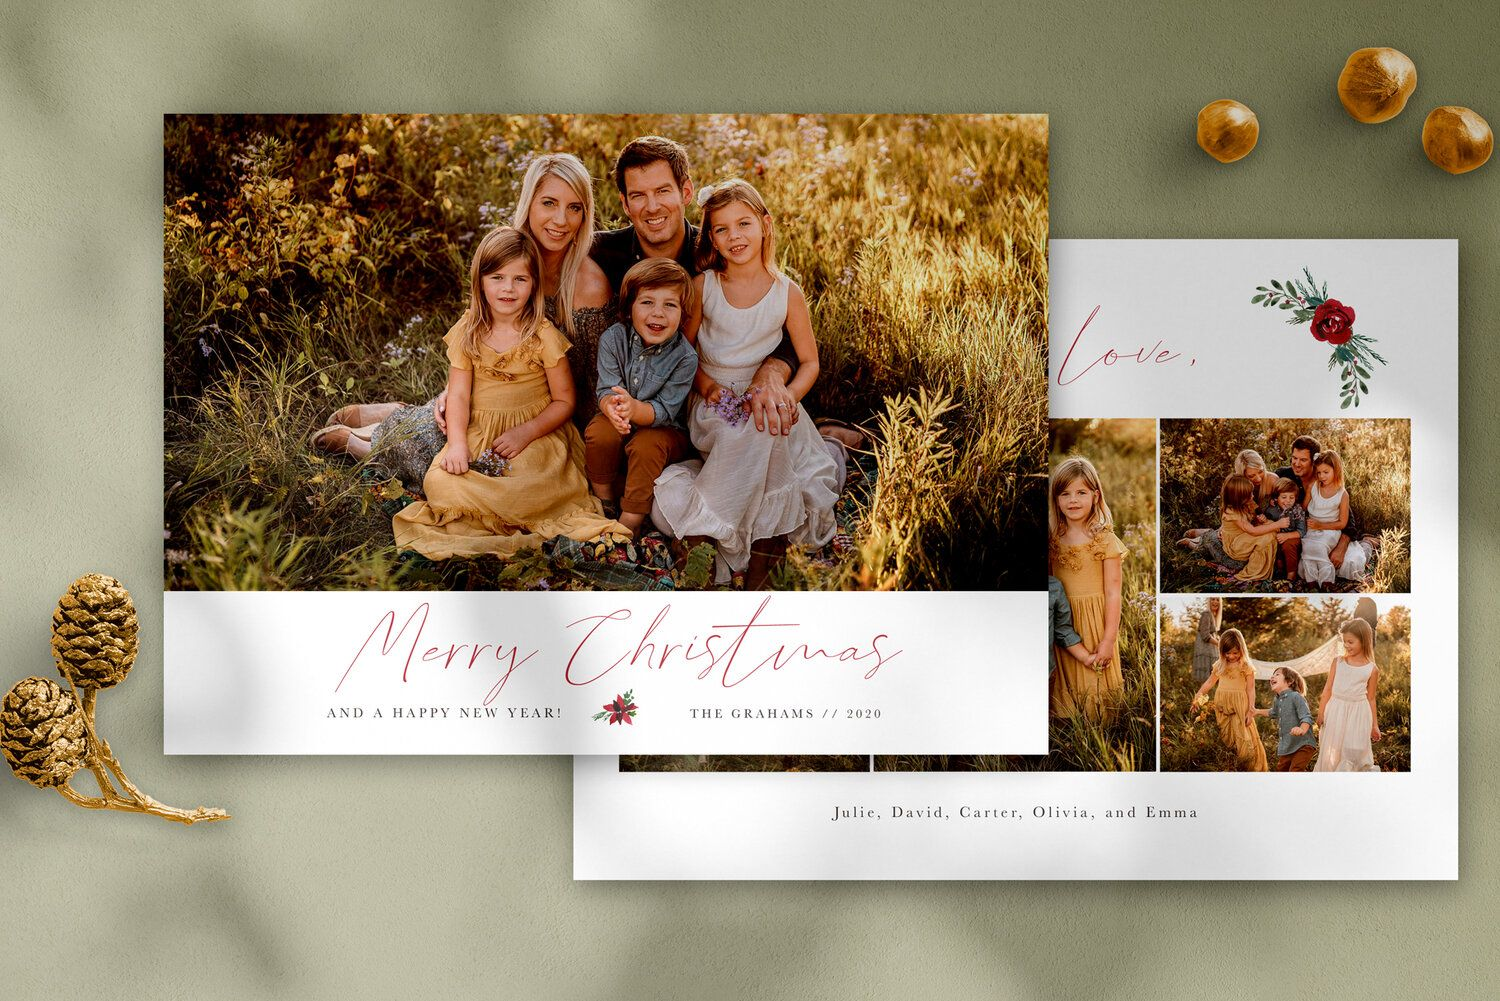 Merry Christmas Photo Card Template Free Matching 3x3 Ornate Ornament Christmas Photo Card Template Photo Card Template Christmas Photo Cards